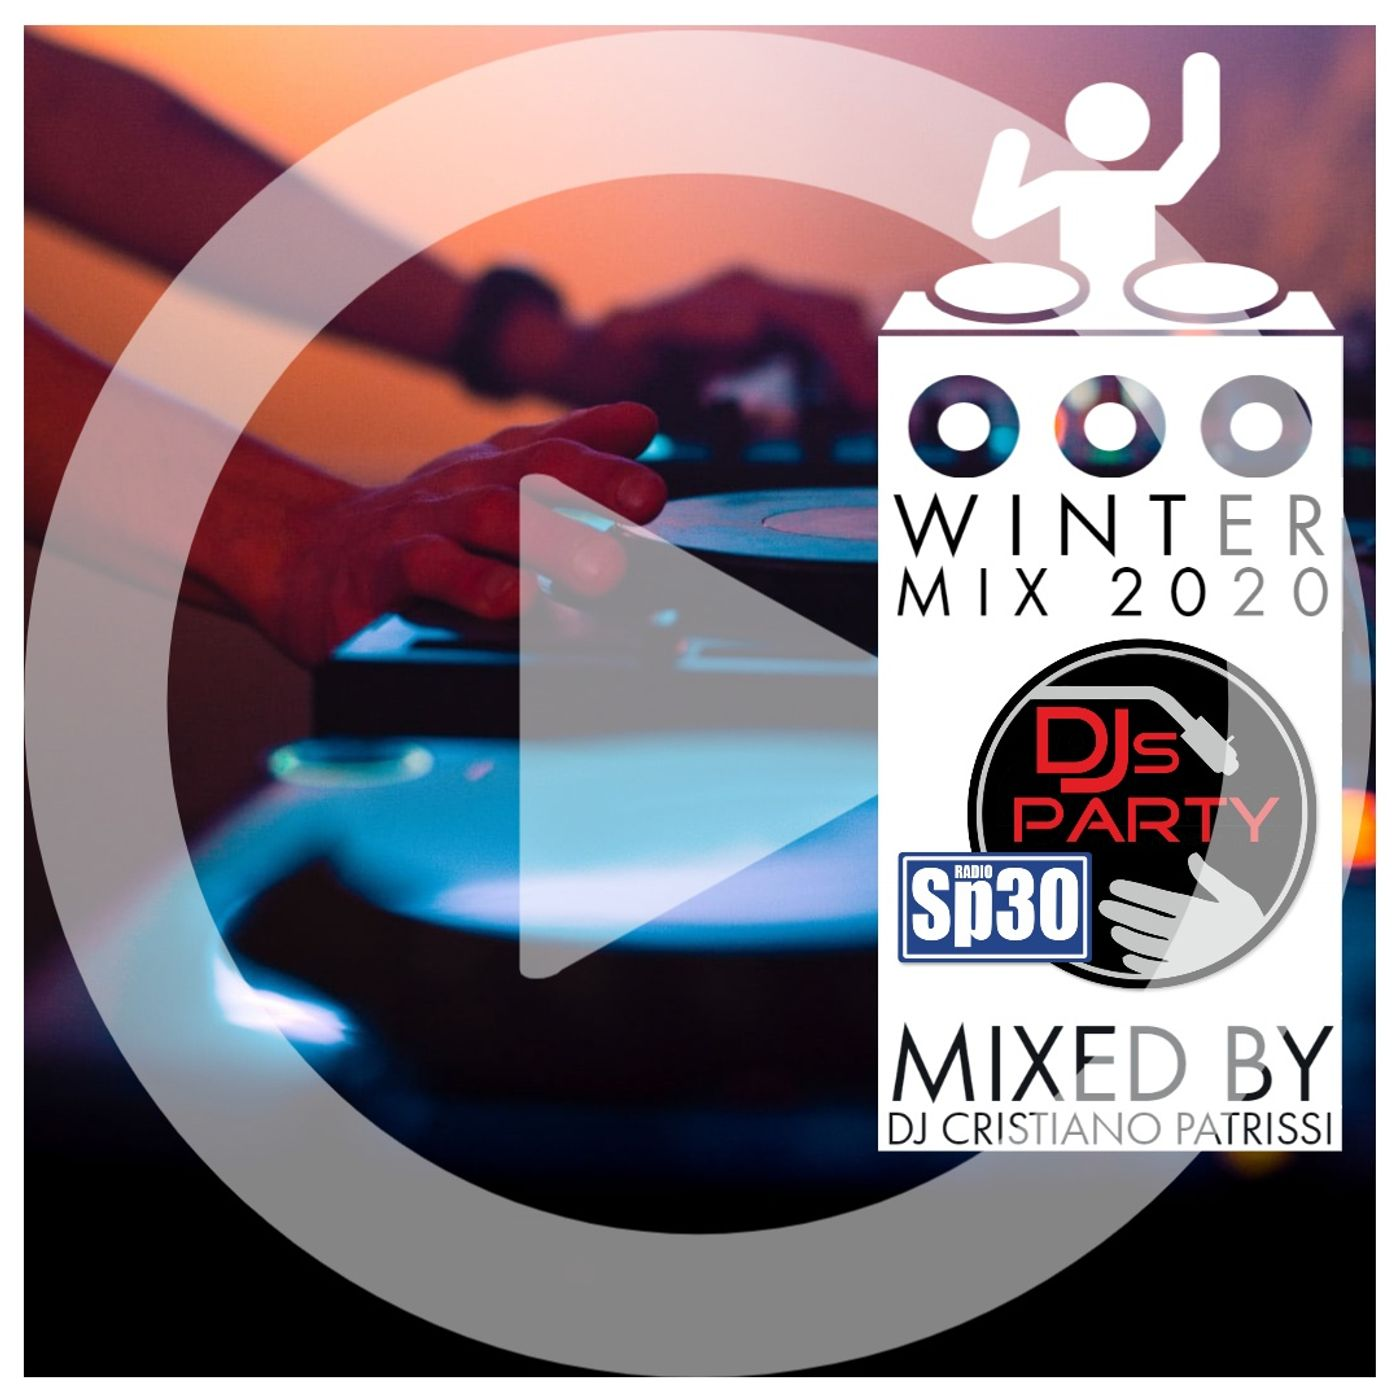 #djsparty - ST.2 EP.23 - Winter Mix #4